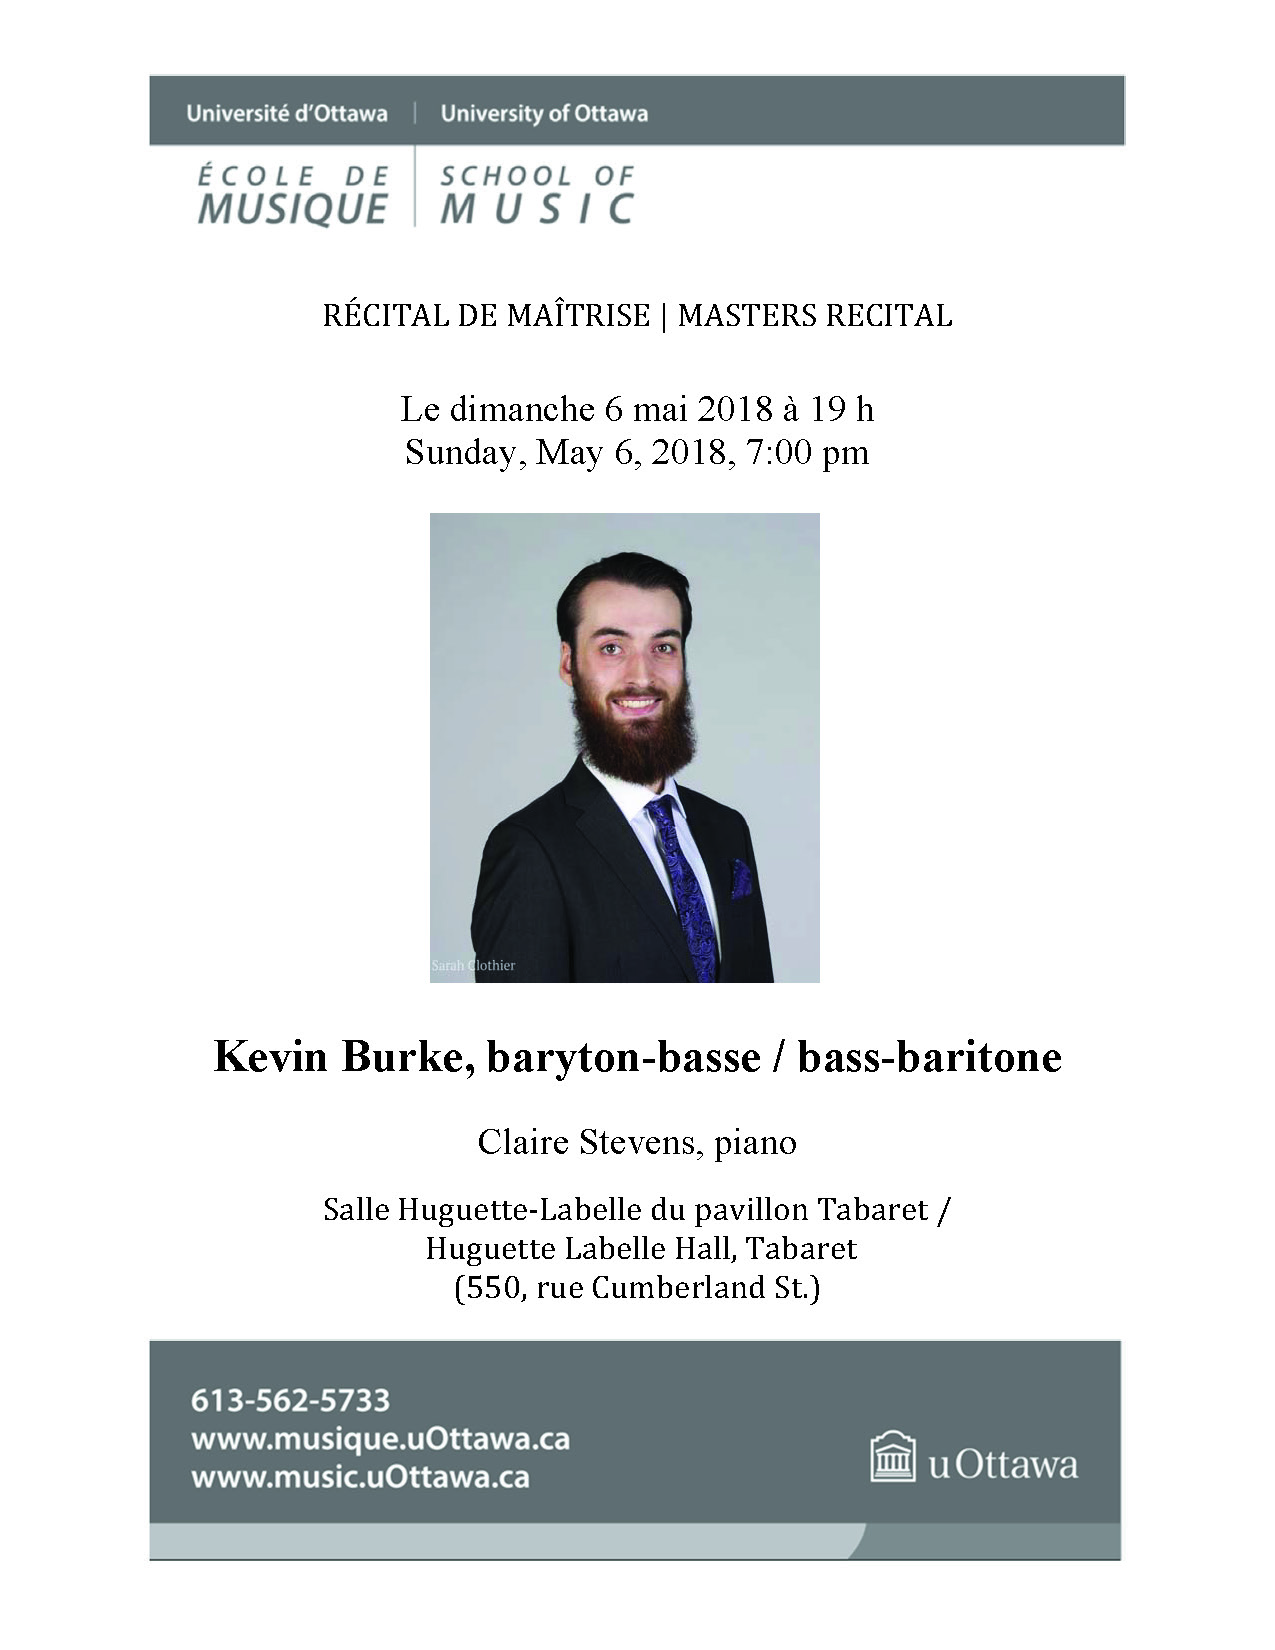 Page 1 of Kevin Burke's recital program